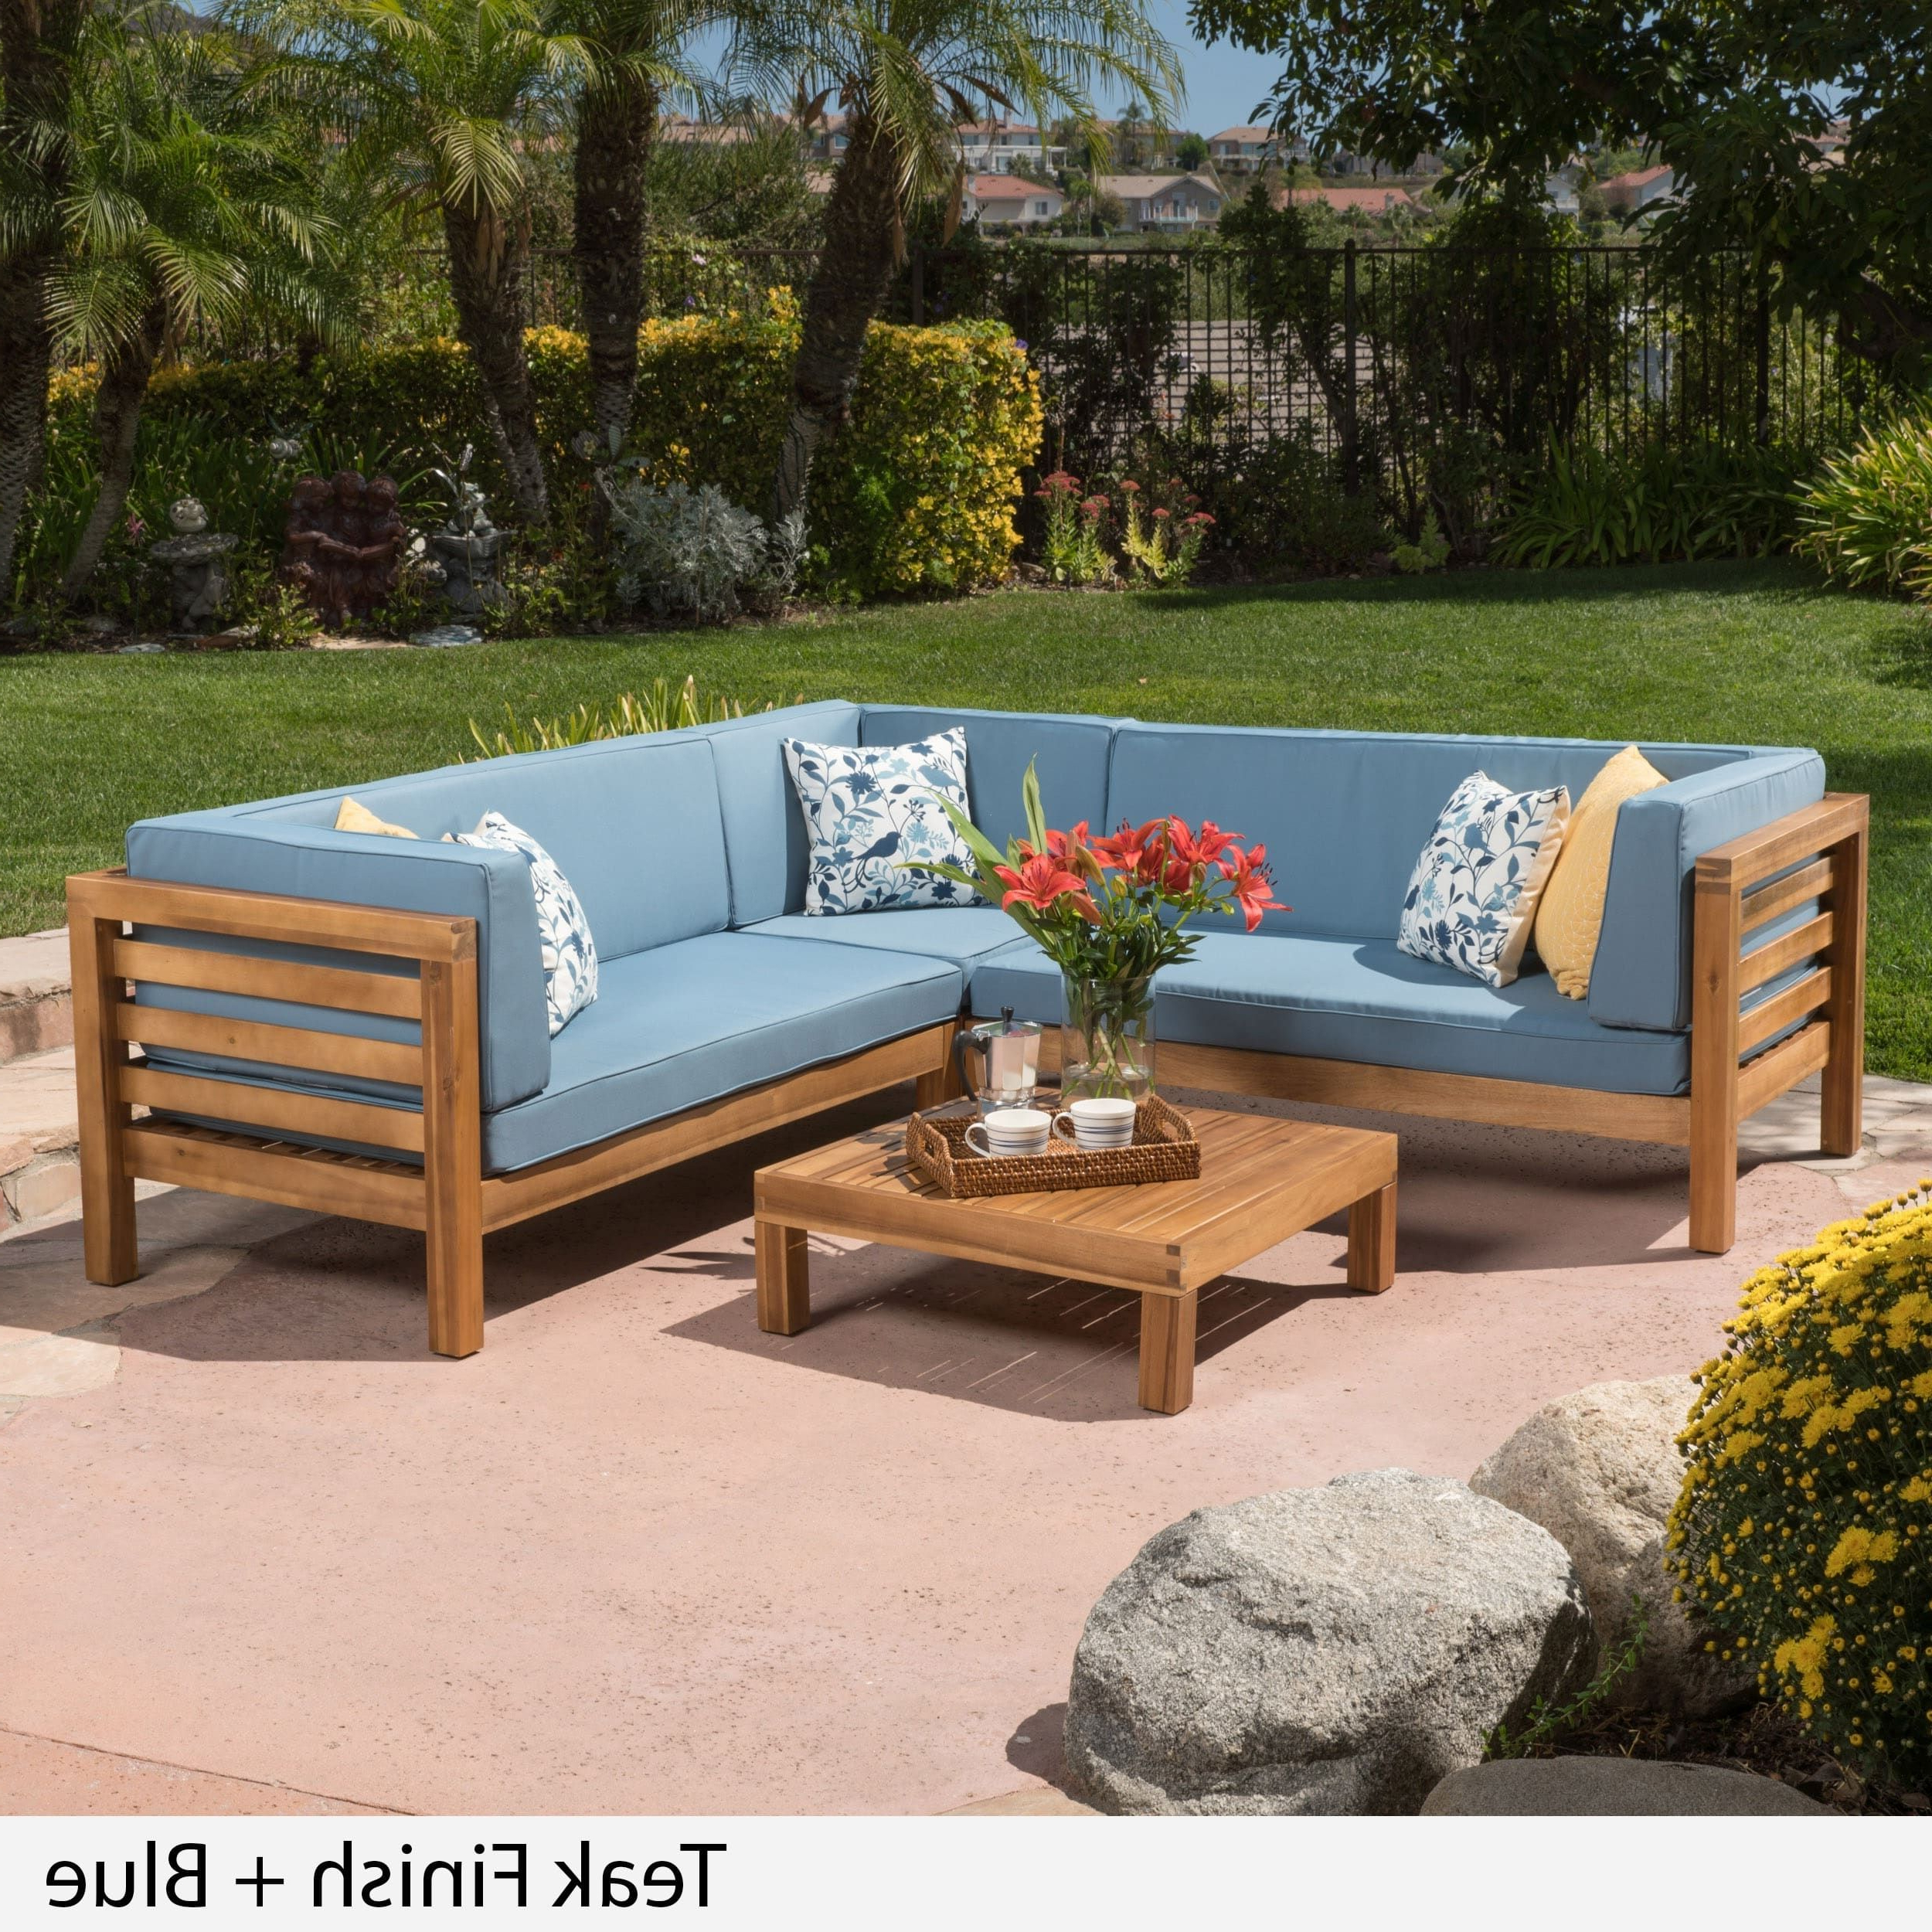 Most Up To Date O'kean Teak Patio Sofas With Cushions Inside Oana Outdoor 4 Piece Acacia Wood Sectional Sofa Set With (Gallery 5 of 25)